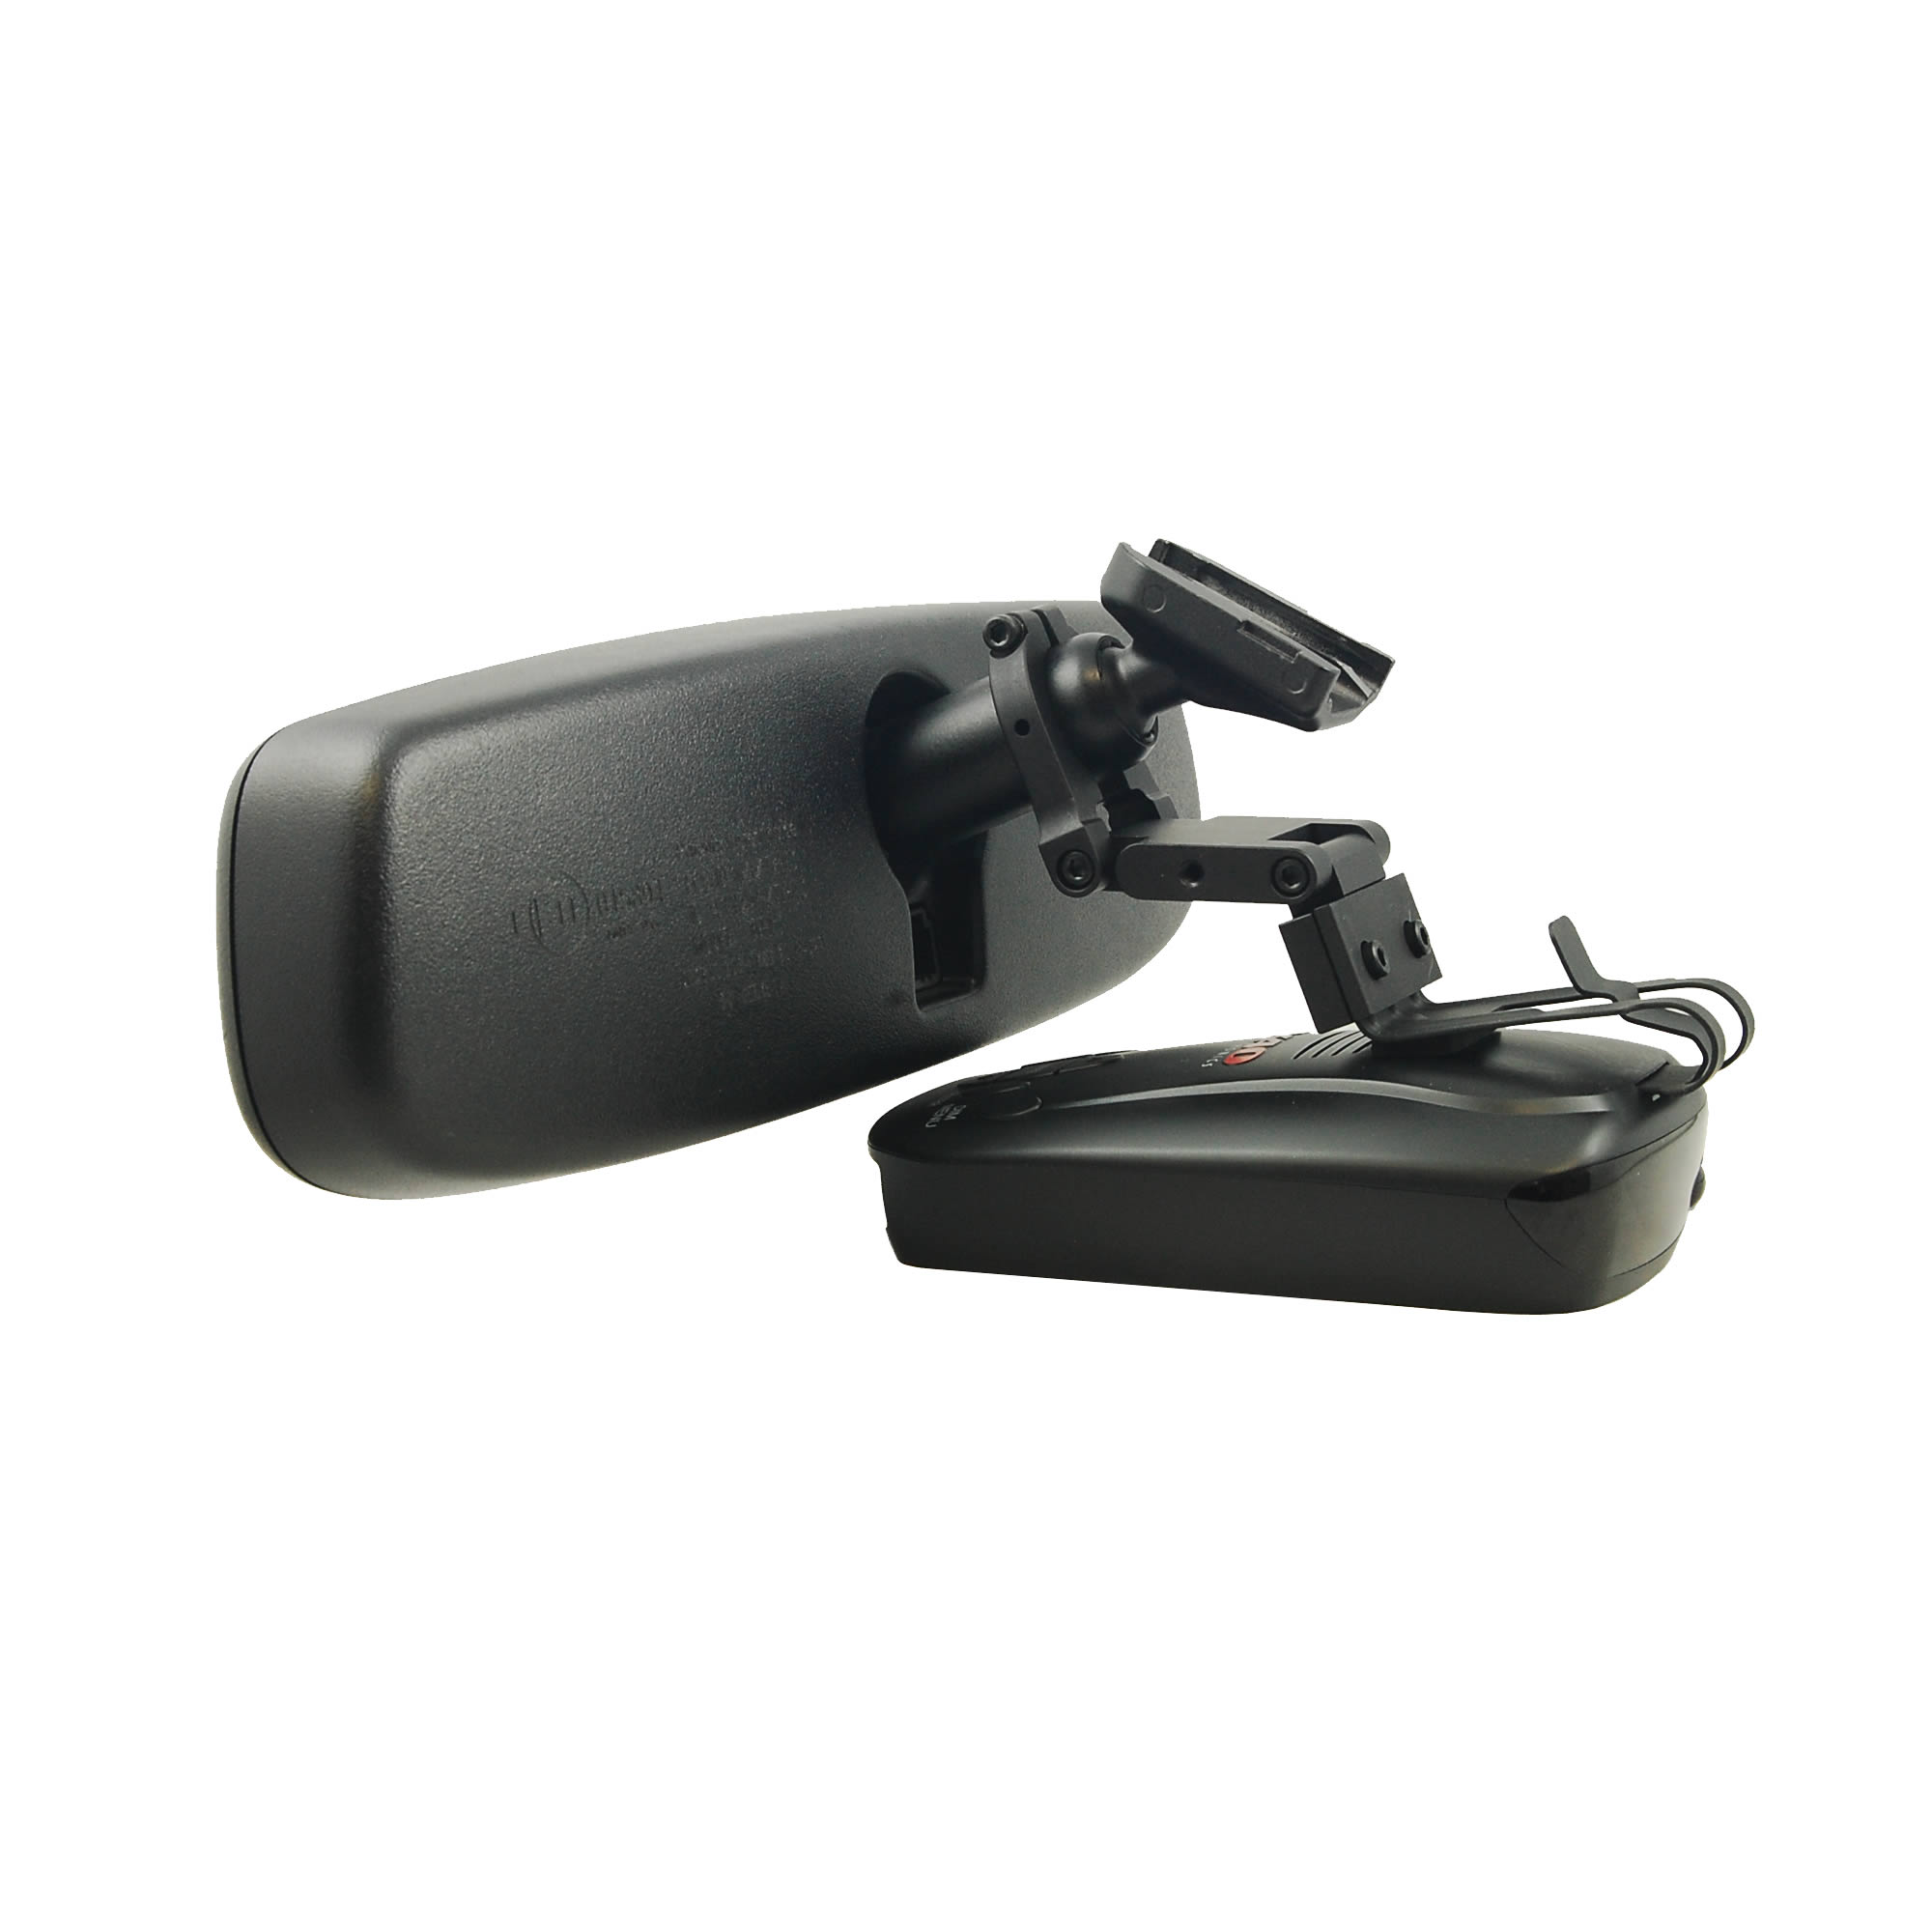 Buy BlendMount BK4-2000R Radar Detector Mount for K40 Electronics, Compatible with Most Domestic and Japanese Vehicles Made... by BlendMount